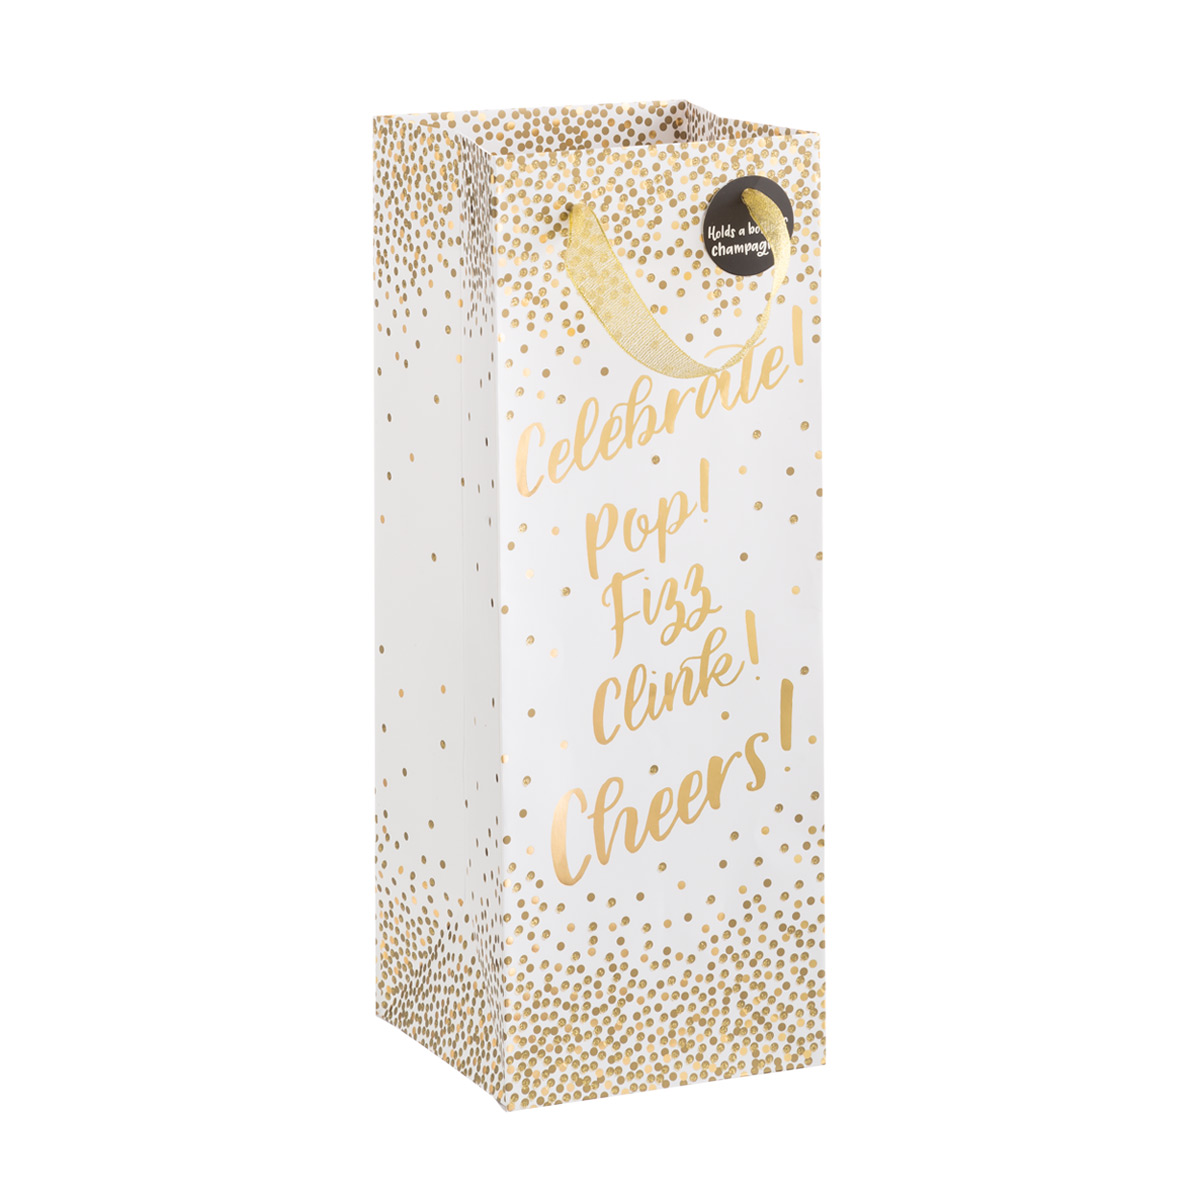 Golden Sparkle Bottle Tote